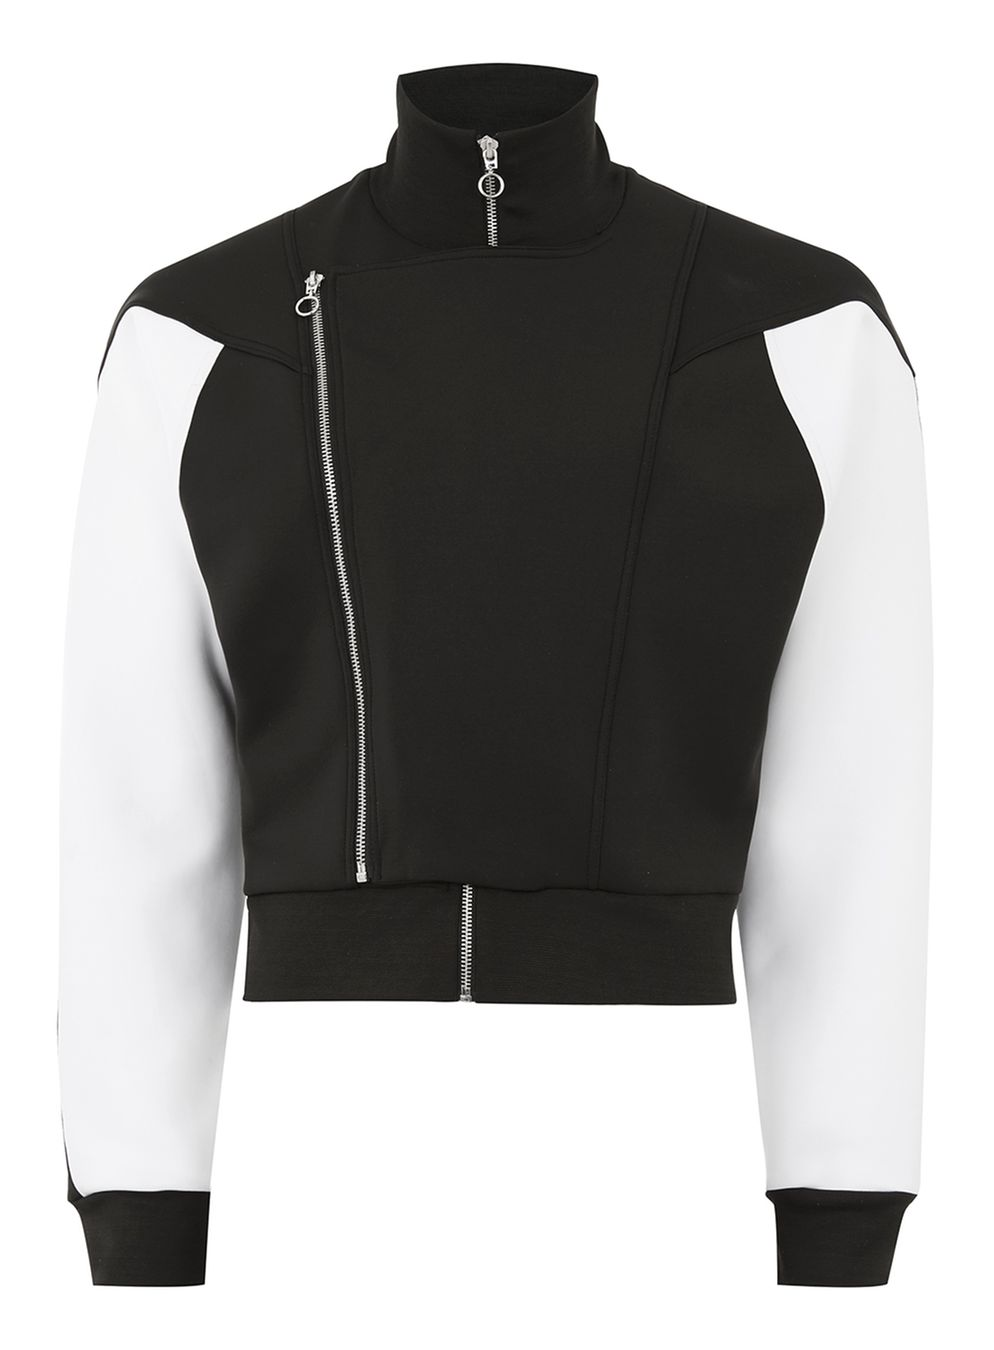 Topman track top - £85 - From the SS18 catwalk collection and a fashion forward version of the classic track top